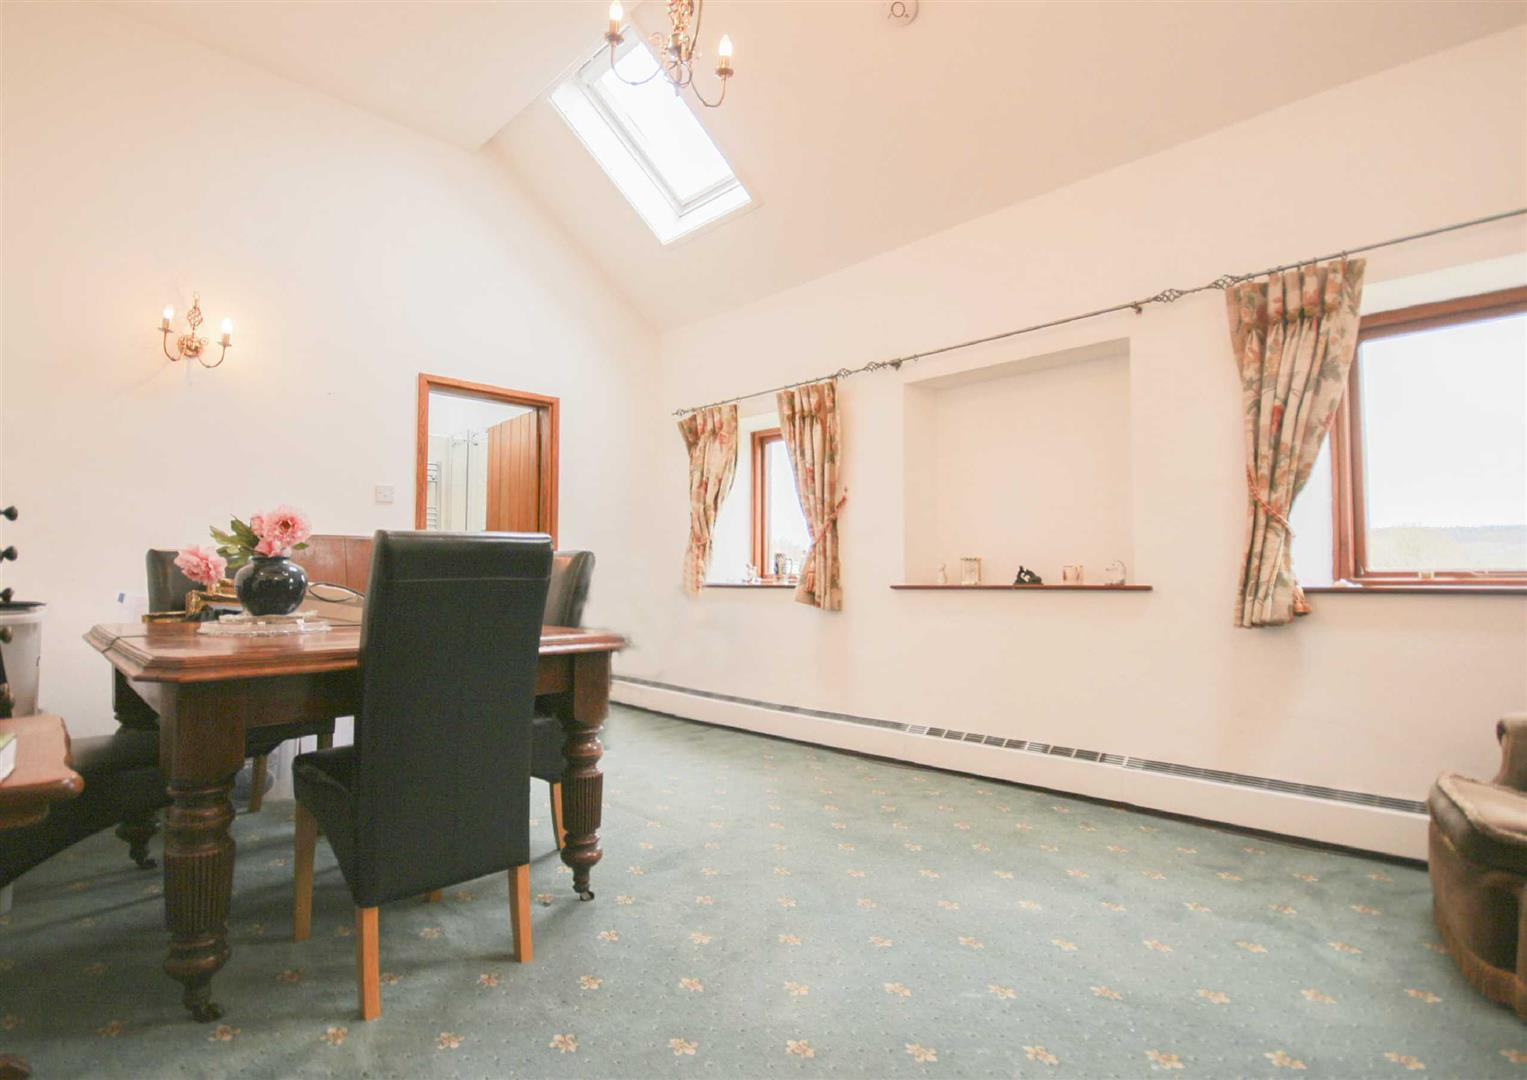 3 Bedroom Barn Conversion For Sale - Image 6